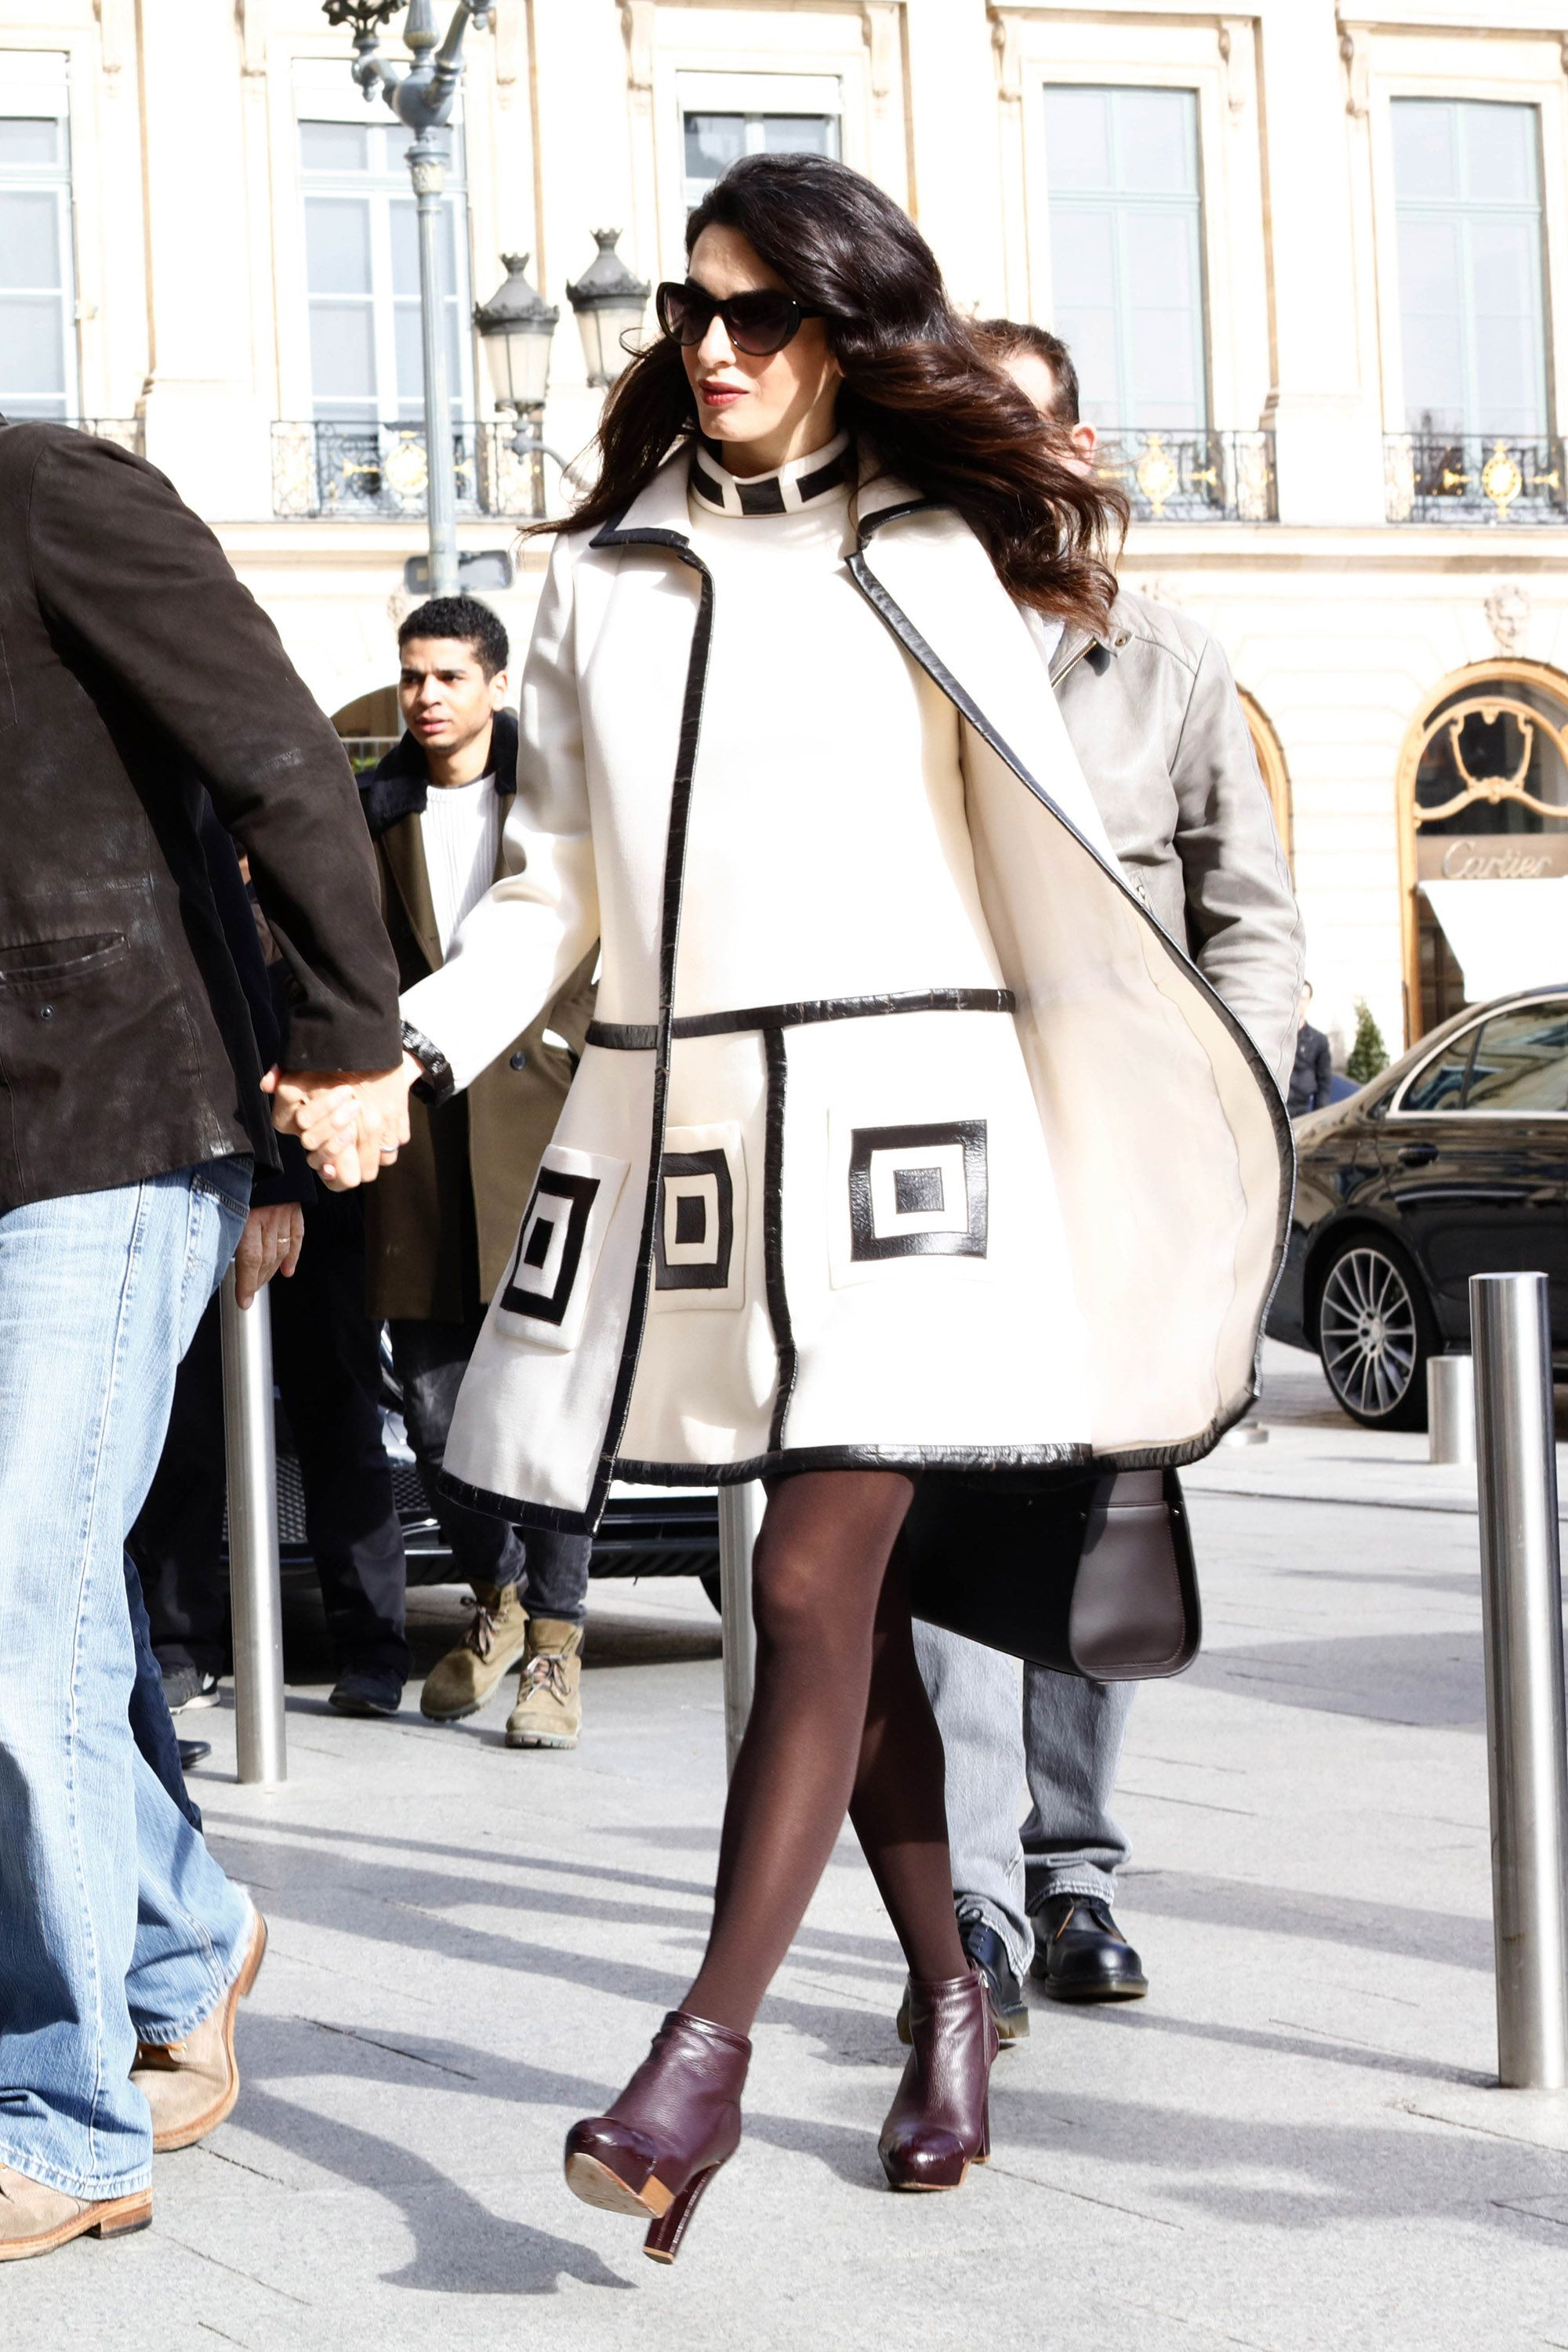 Amal Clooney S Best Looks Pictures Of Amal Clooney S Top Fashion